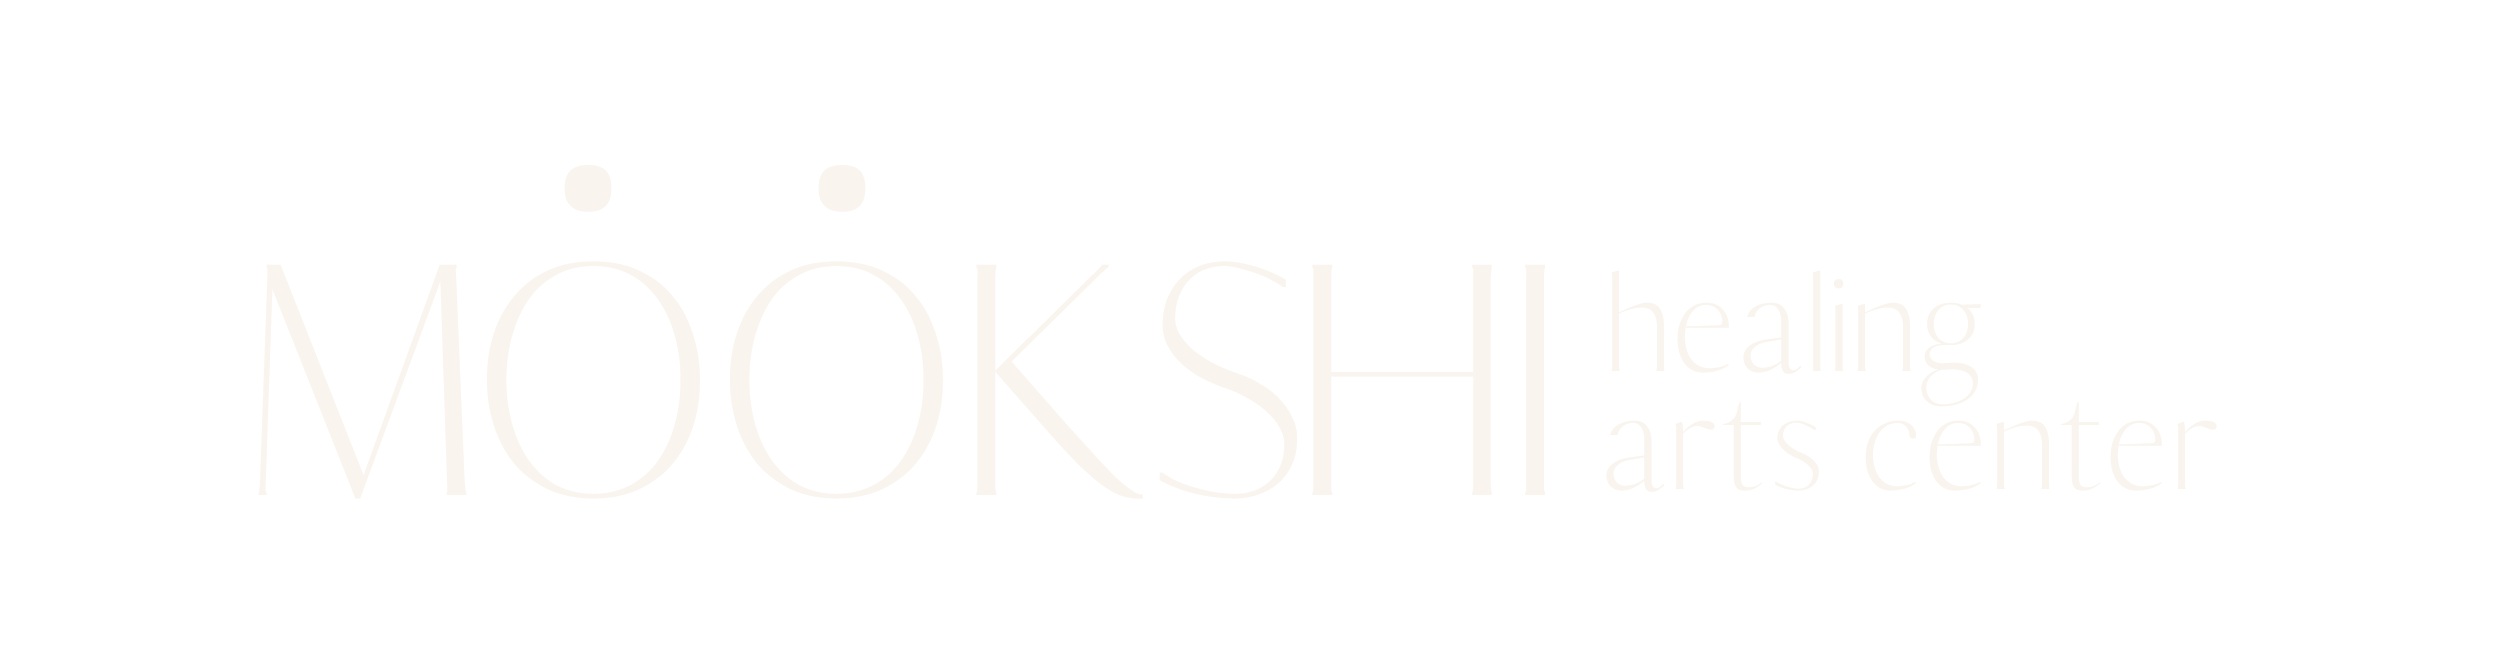 Mookshi-Secondary-Logo-Cream.png